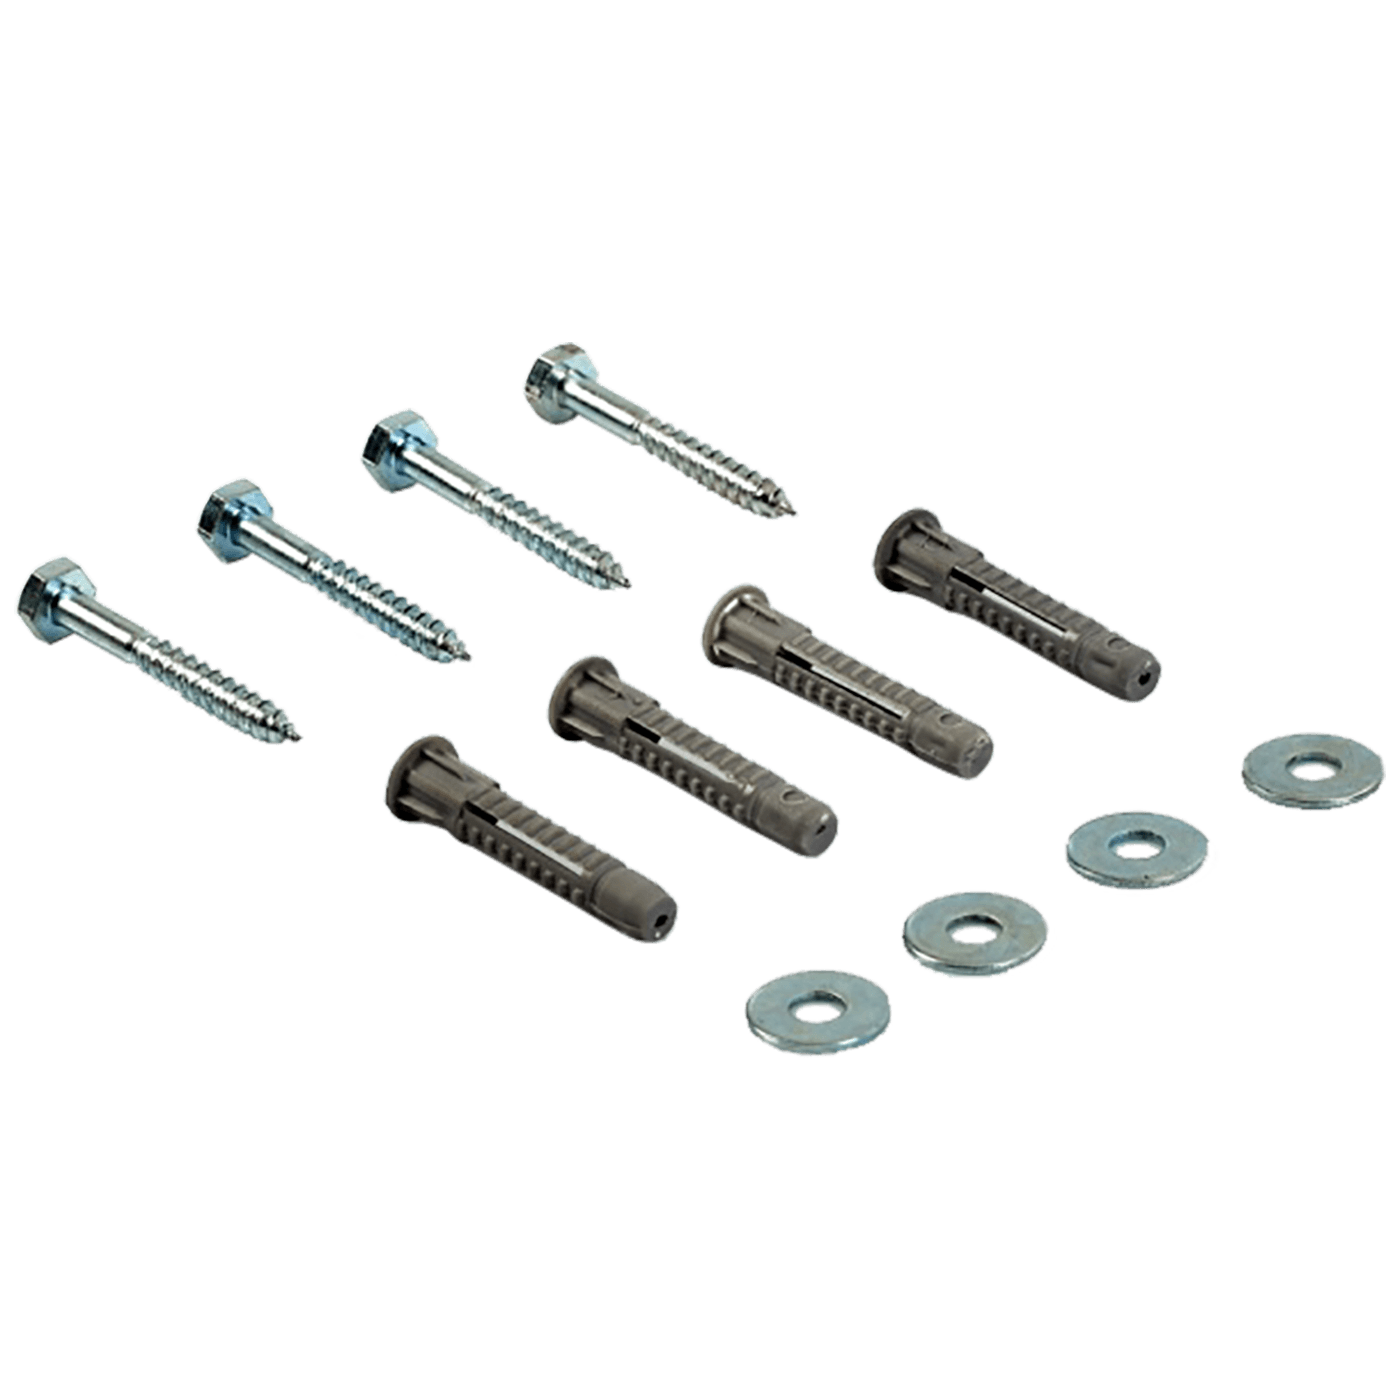 V0060 - Screw Set HQ